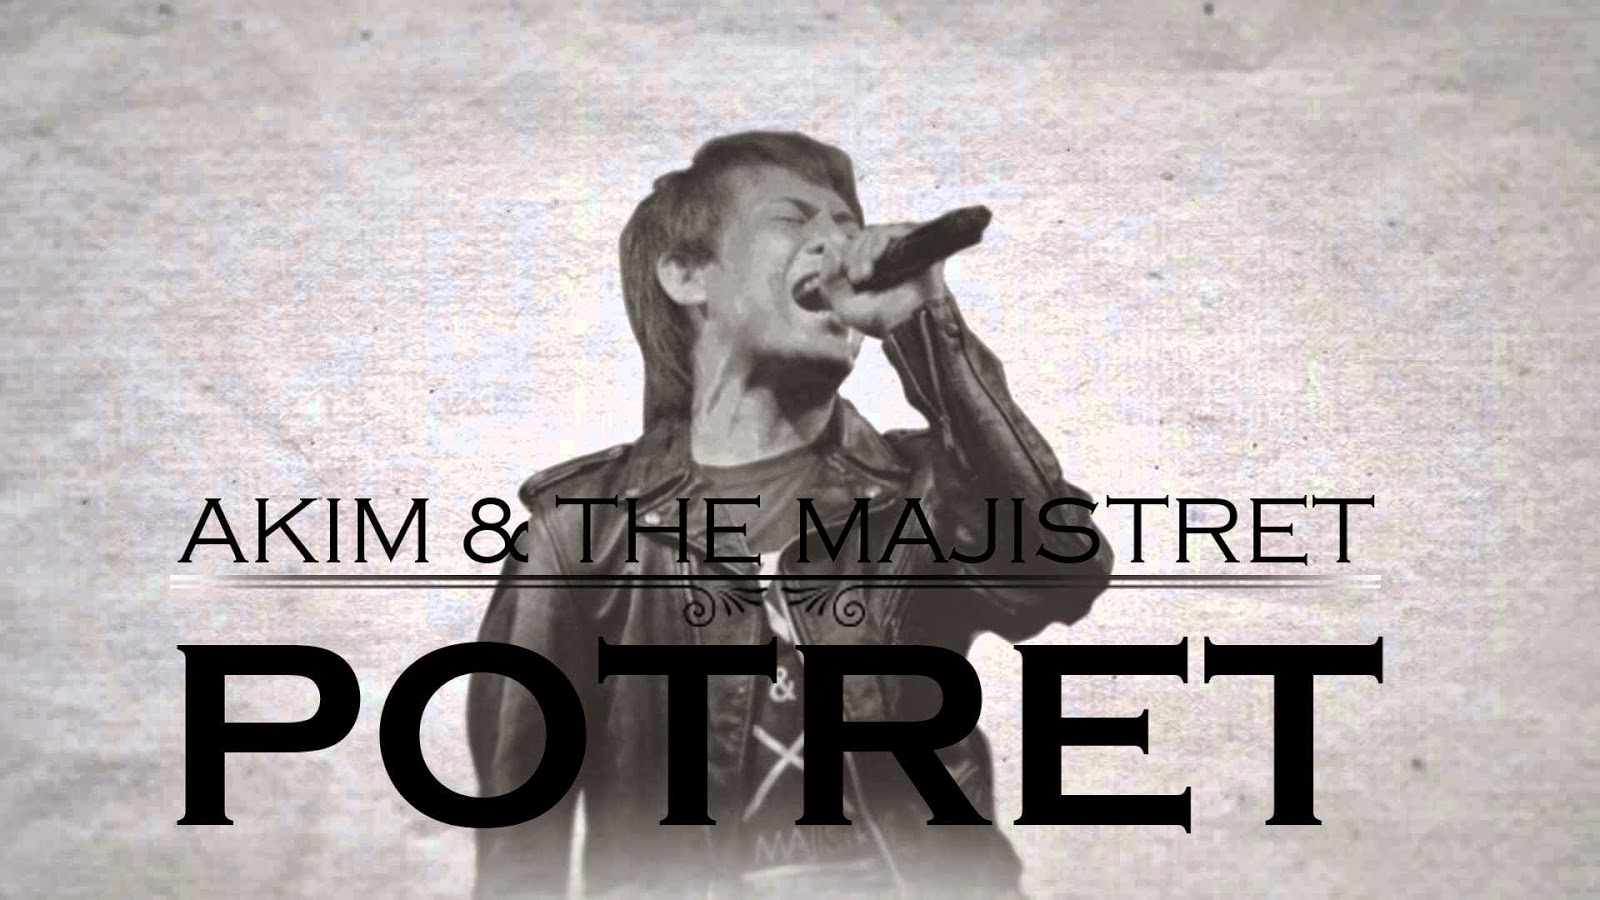 Potret Akim & The Magistrate